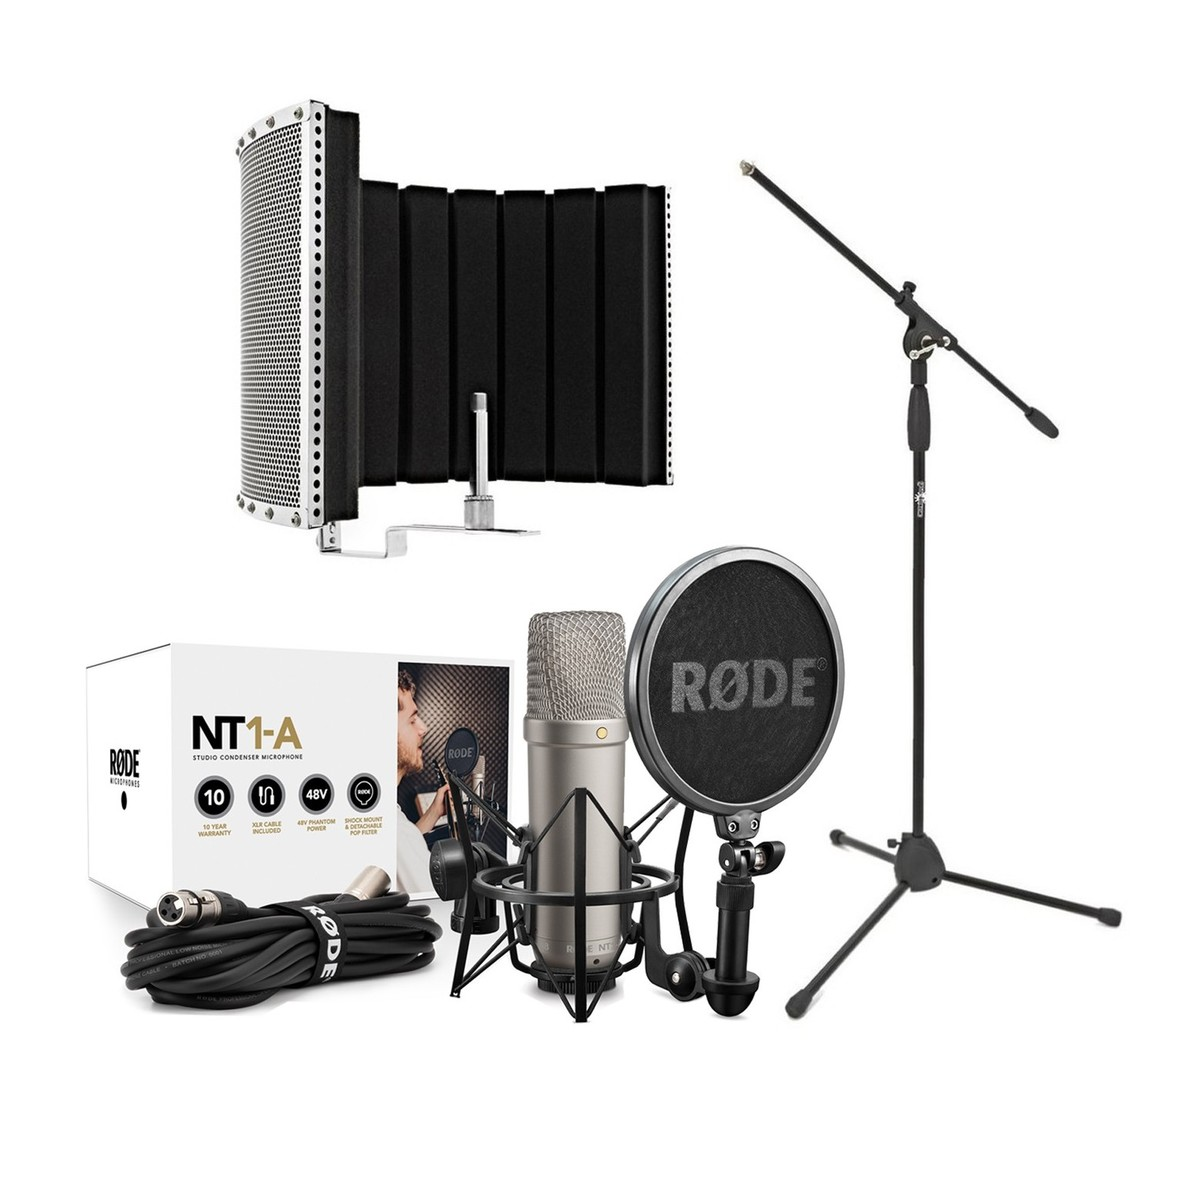 Rode NT1 A Vocal Recording Pack With ESI U22XT Interface